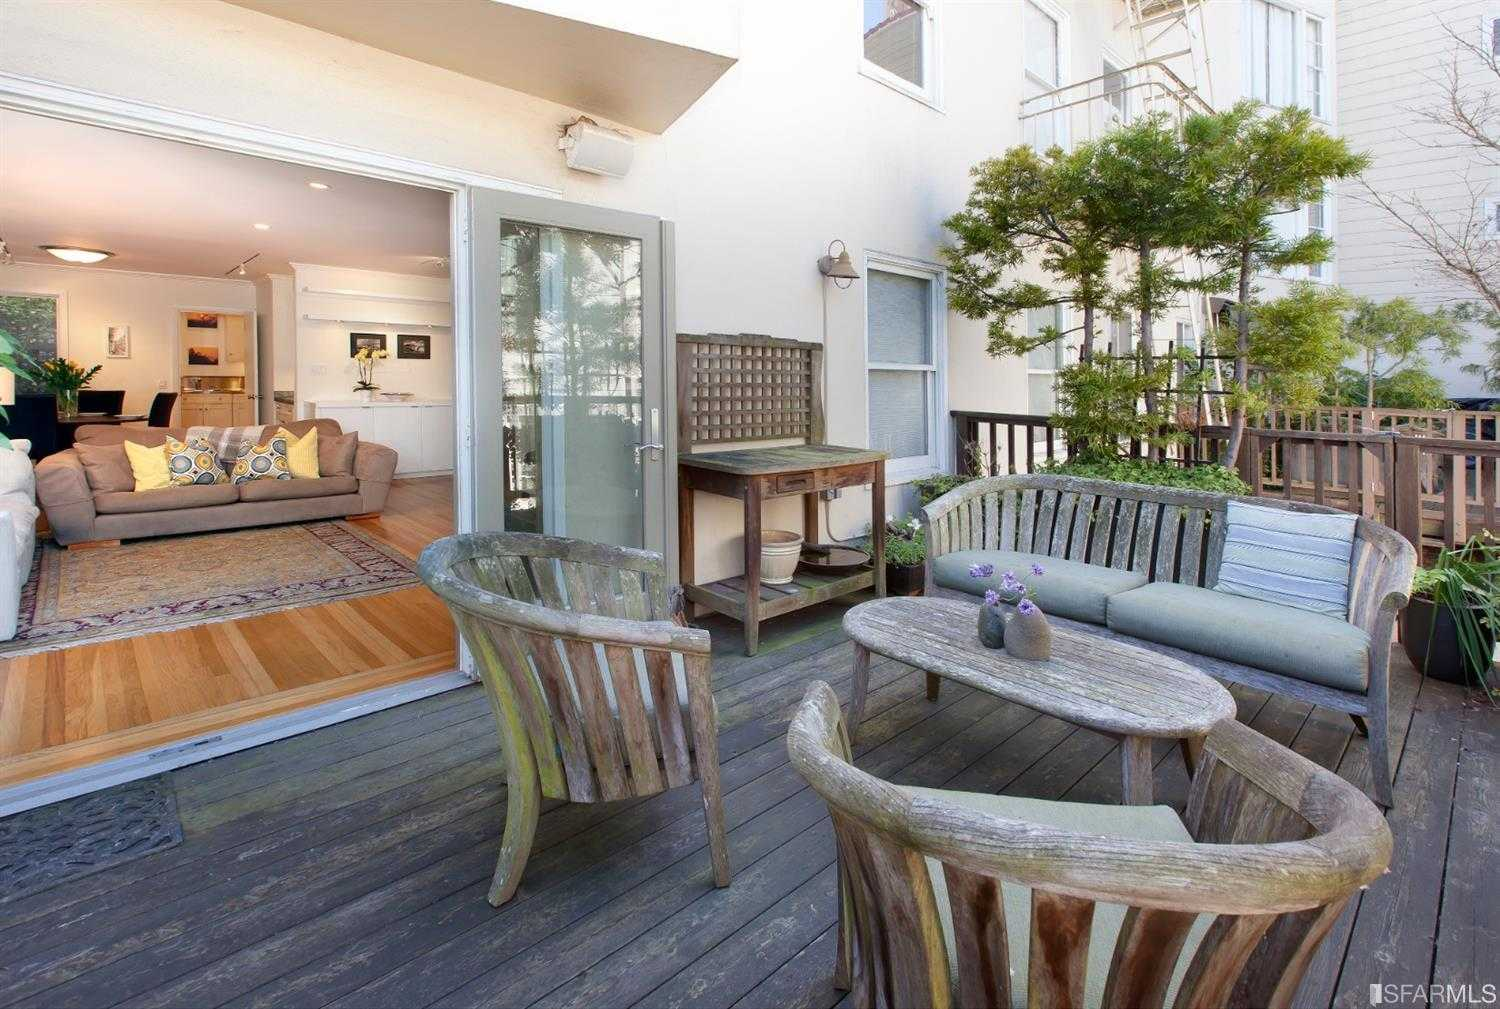 $1,325,000 - 1Br/1Ba -  for Sale in San Francisco